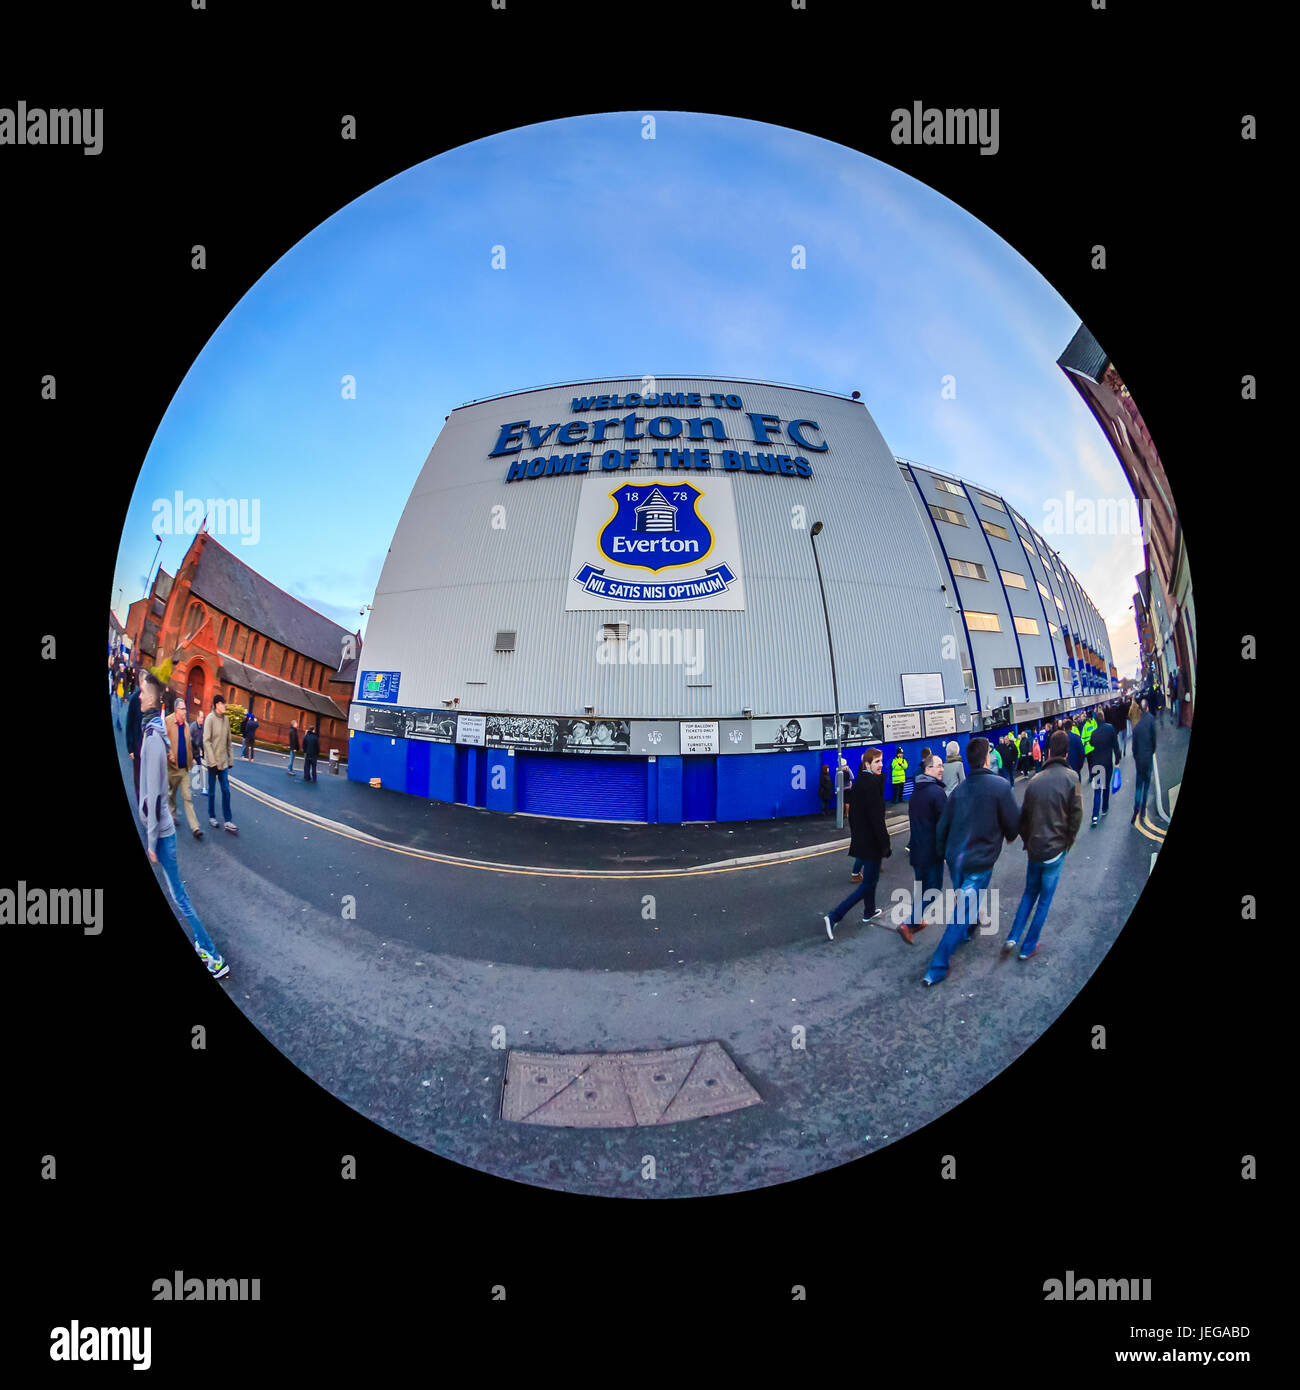 Goodison Park home of Everton Football Club.  The stadium is one of the oldest purpose built football stadiums in Stock Photo